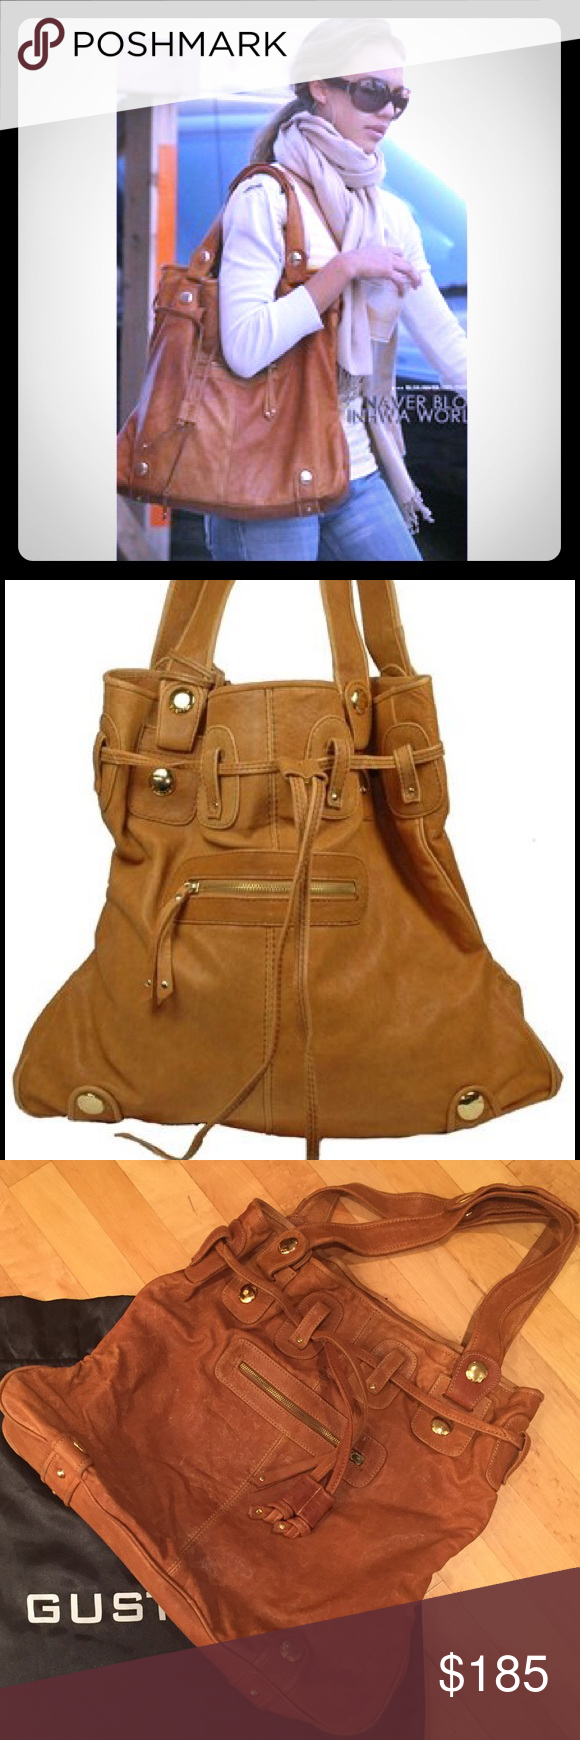 57bb6b5e13eb Gustto Parina leather tote bag Brown leather with gold hardware. Measures  18